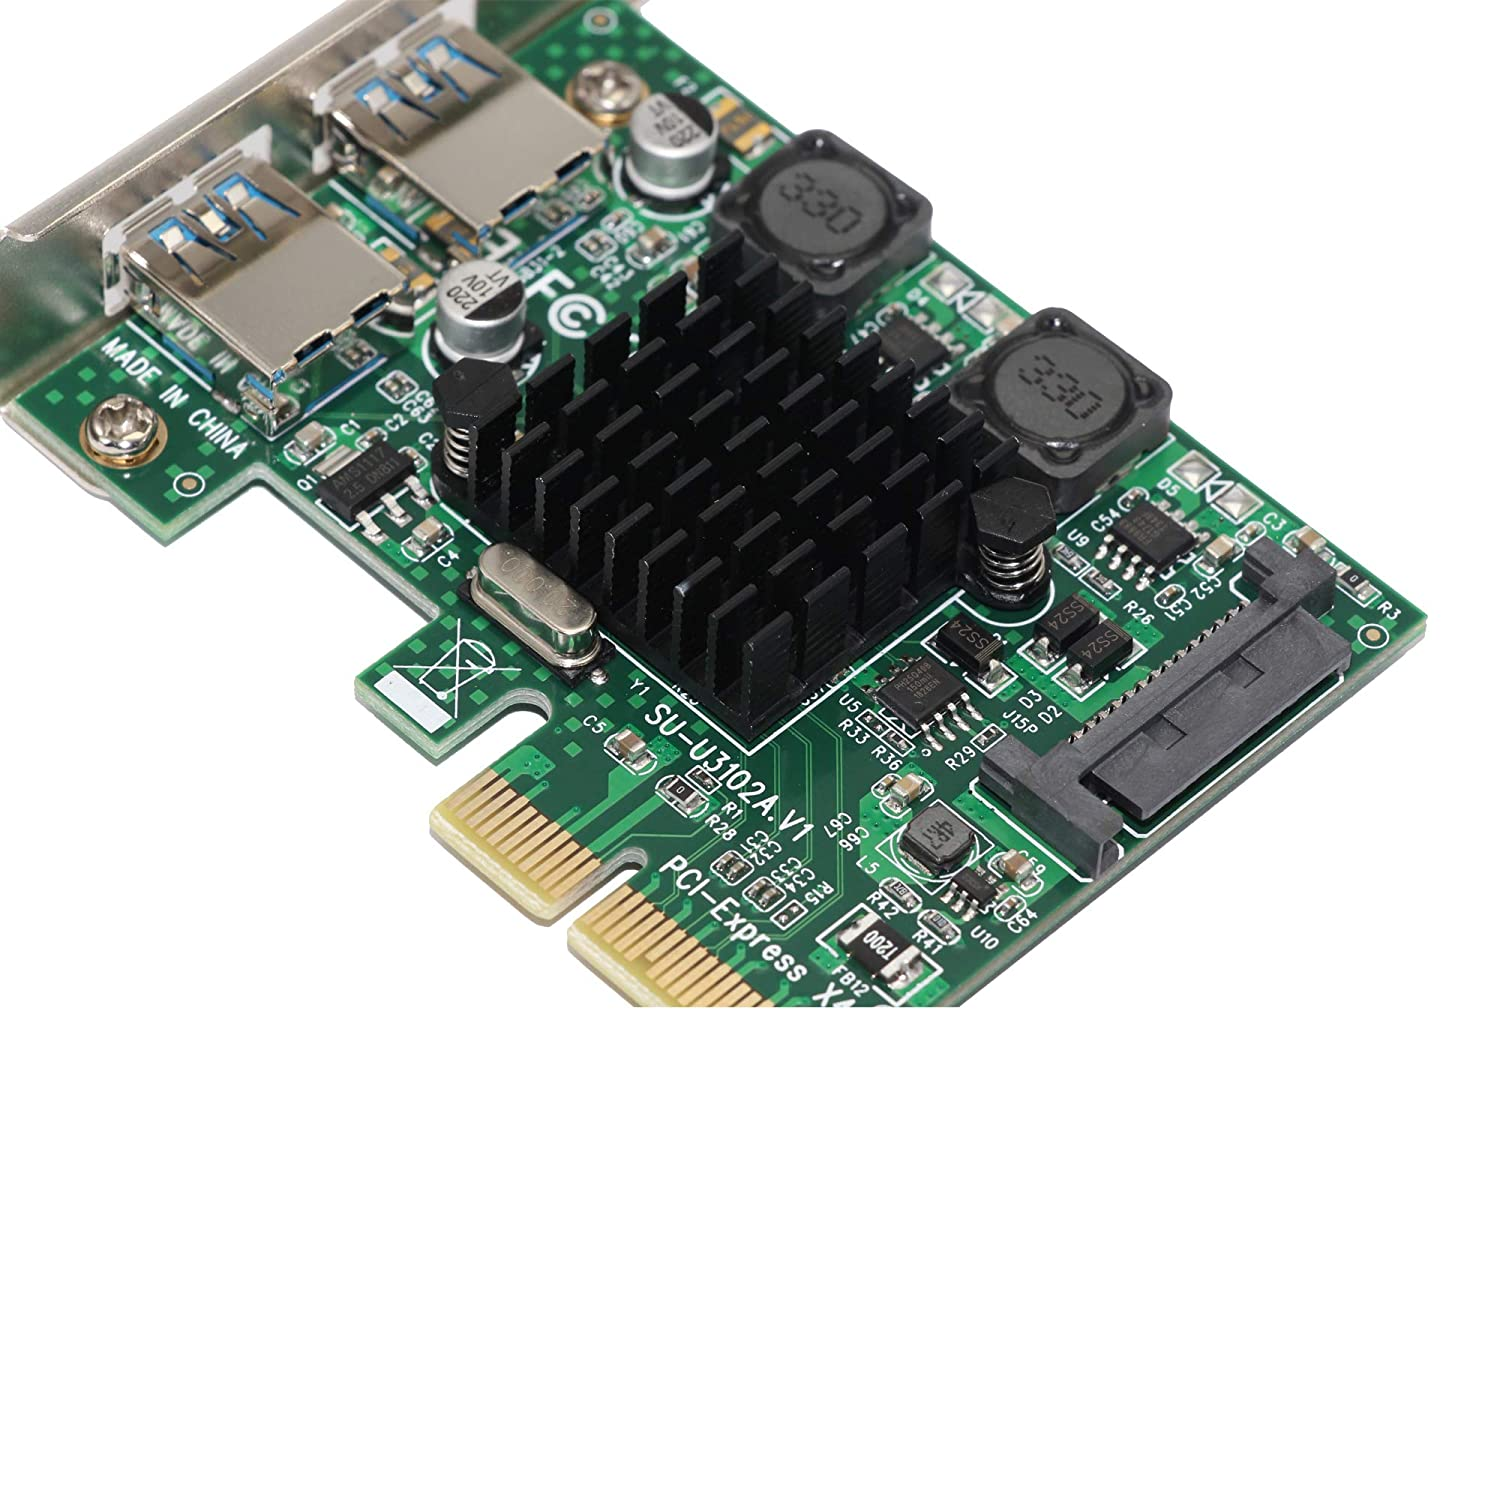 U3102A PCI-EX2 to USB3.1 Expansion Adapter Card High Speed  ASM3142 Chip for PC